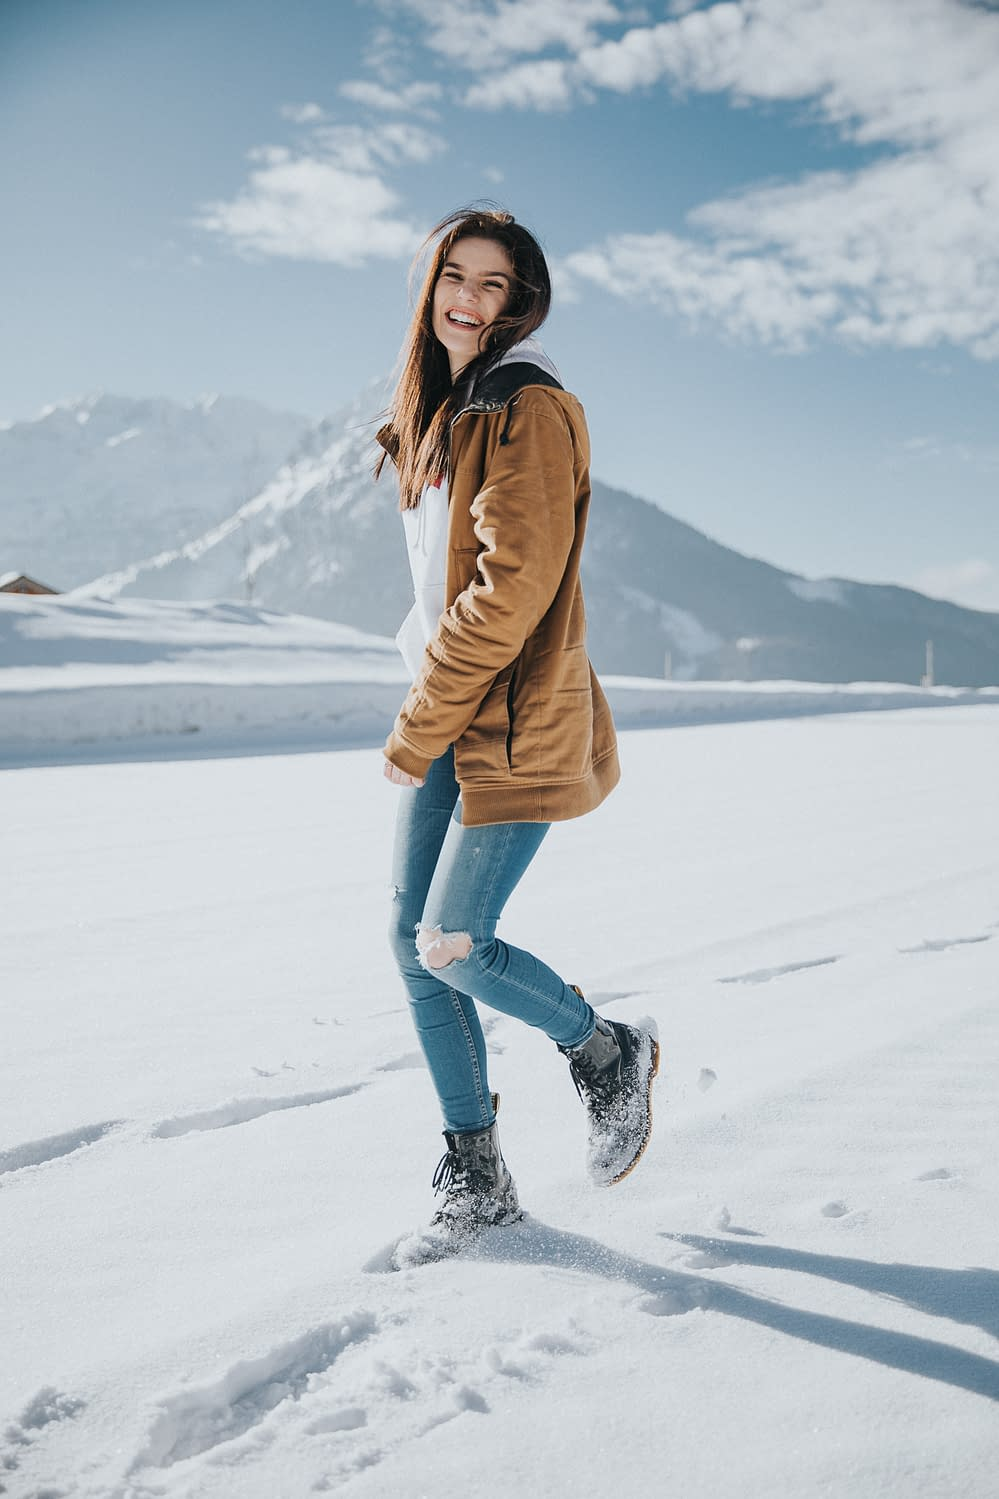 Lifestyle - Winter Natur Portrait Lejla